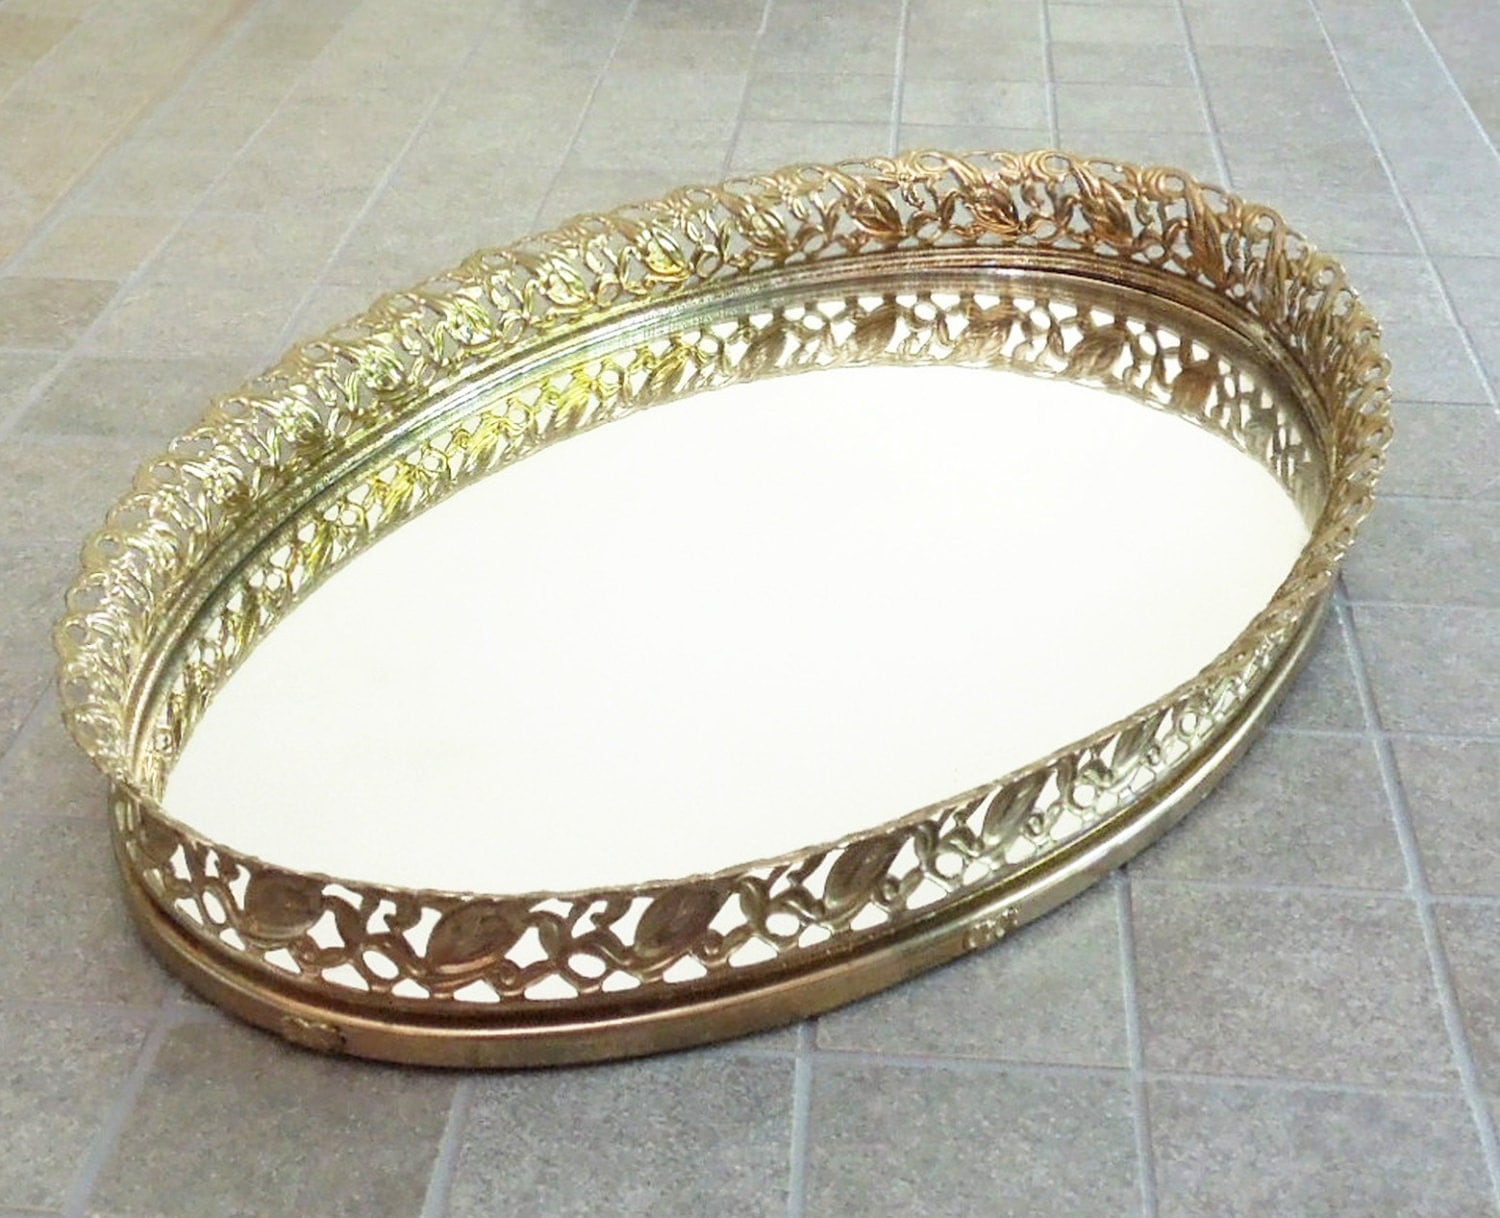 Antique vanity tray with lace insert - Oval Vintage Brass Mirror Vanity Tray With Filigree